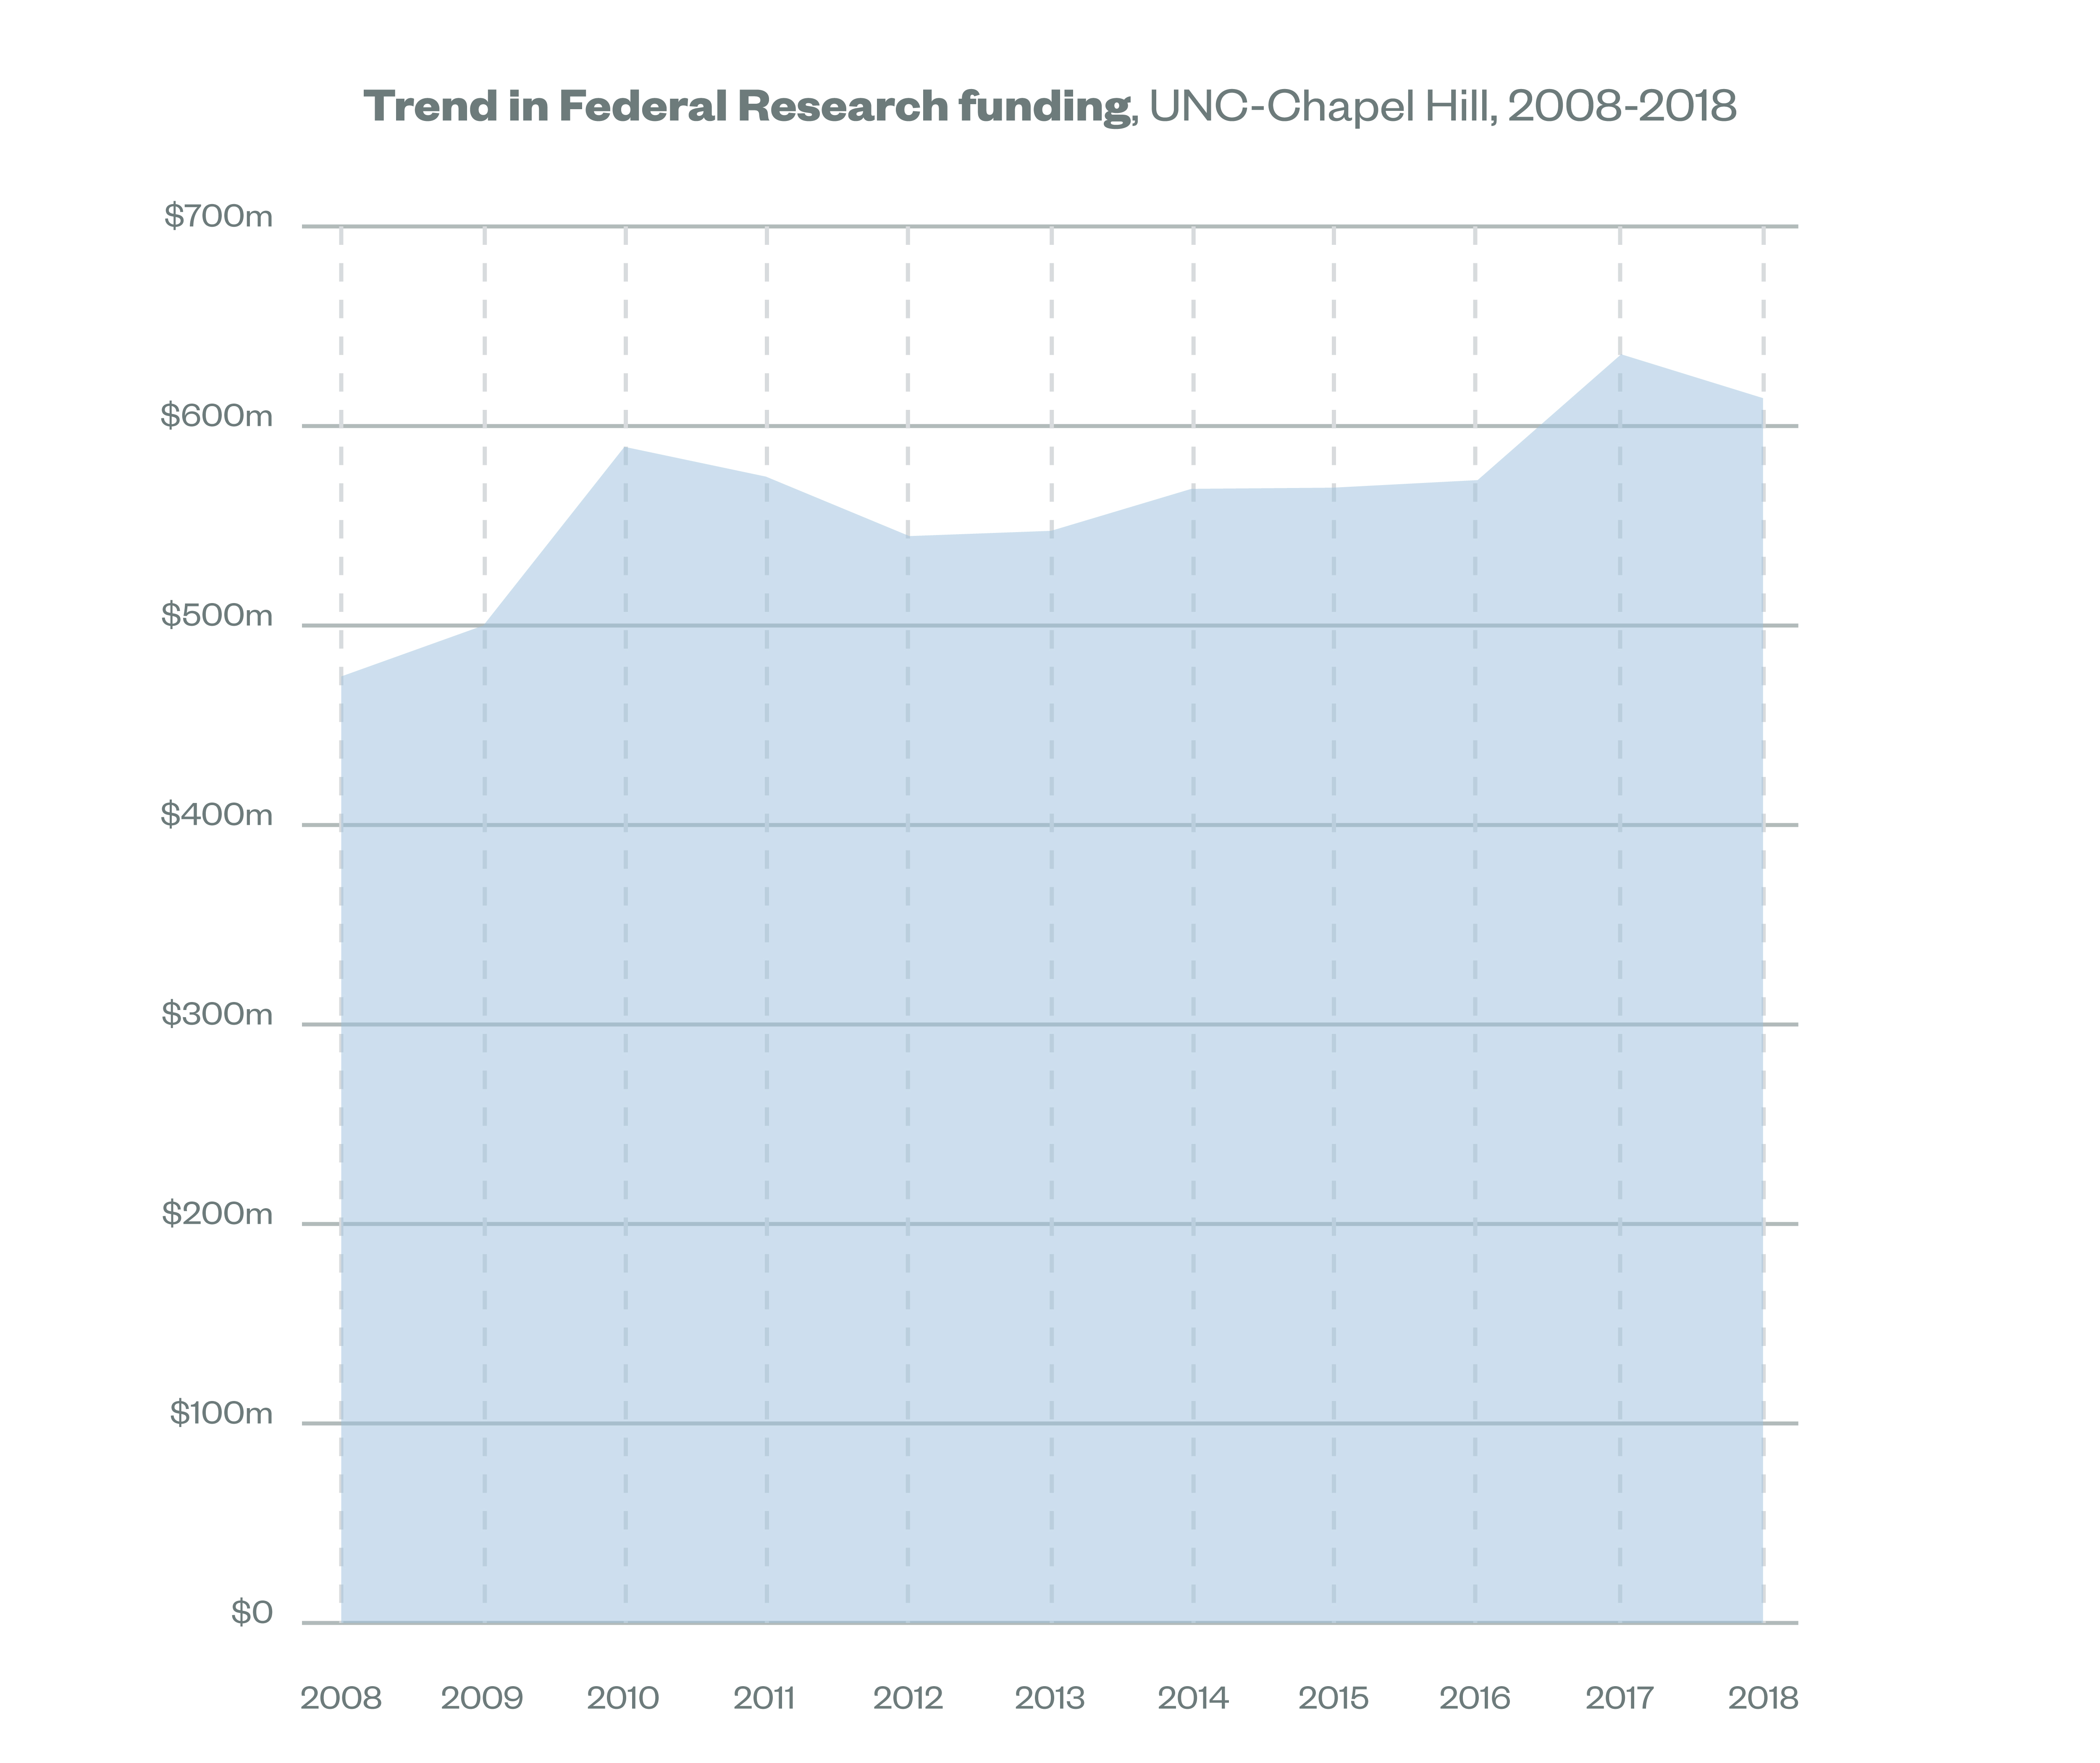 Graph showing the trend in federal research funding at UNC in Chapel Hill. 2018, the amount was $613,689,045.